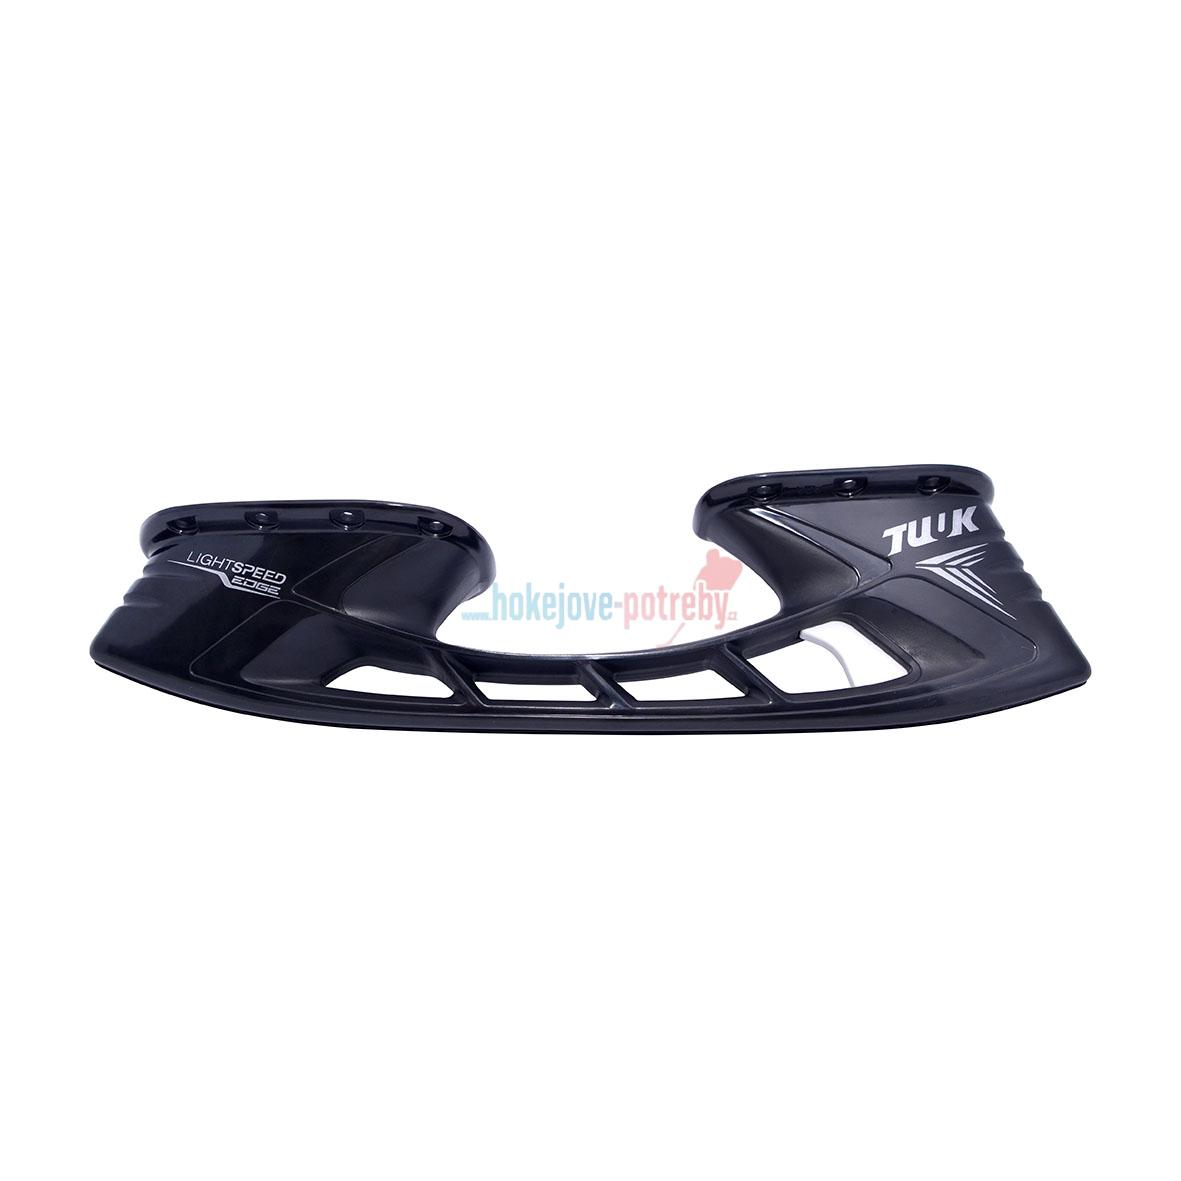 Holder TUUK Light Speed EDGE SR - BLK-2019